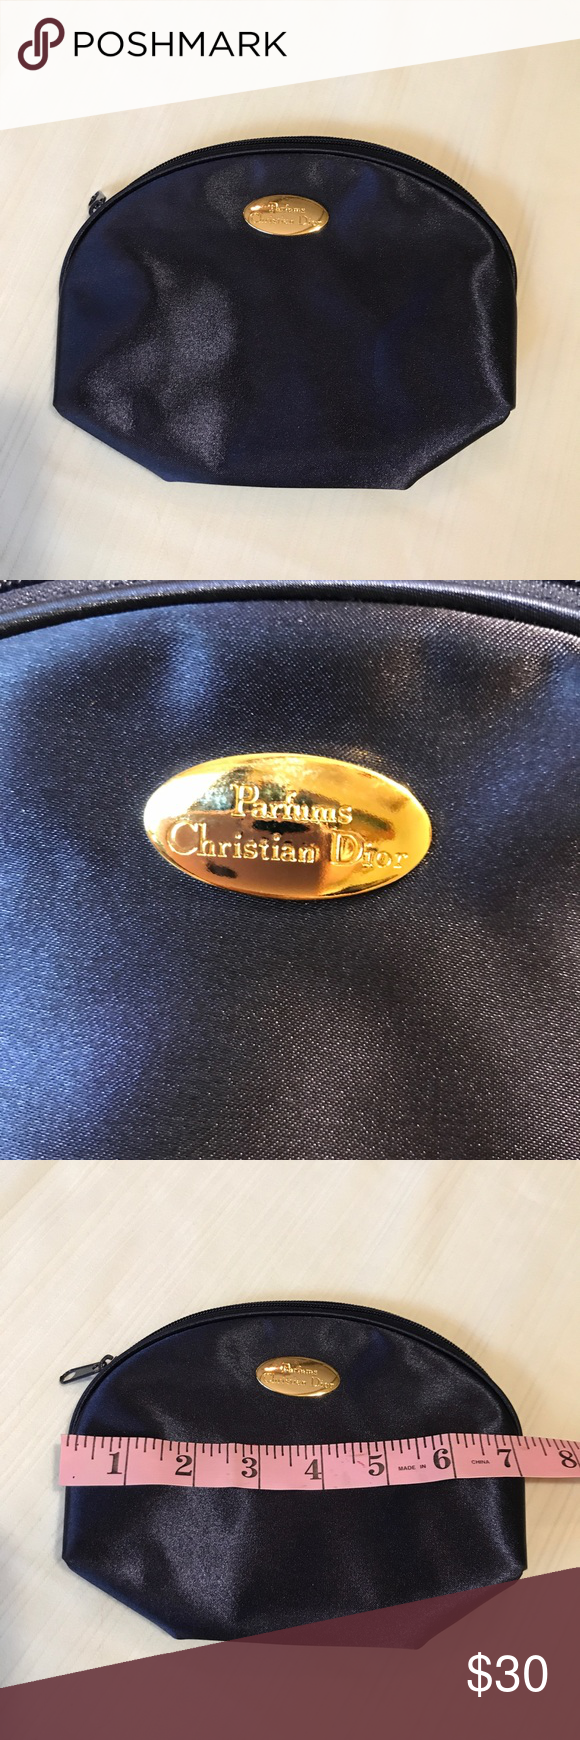 Dior makeup bag (With images) Christian dior makeup